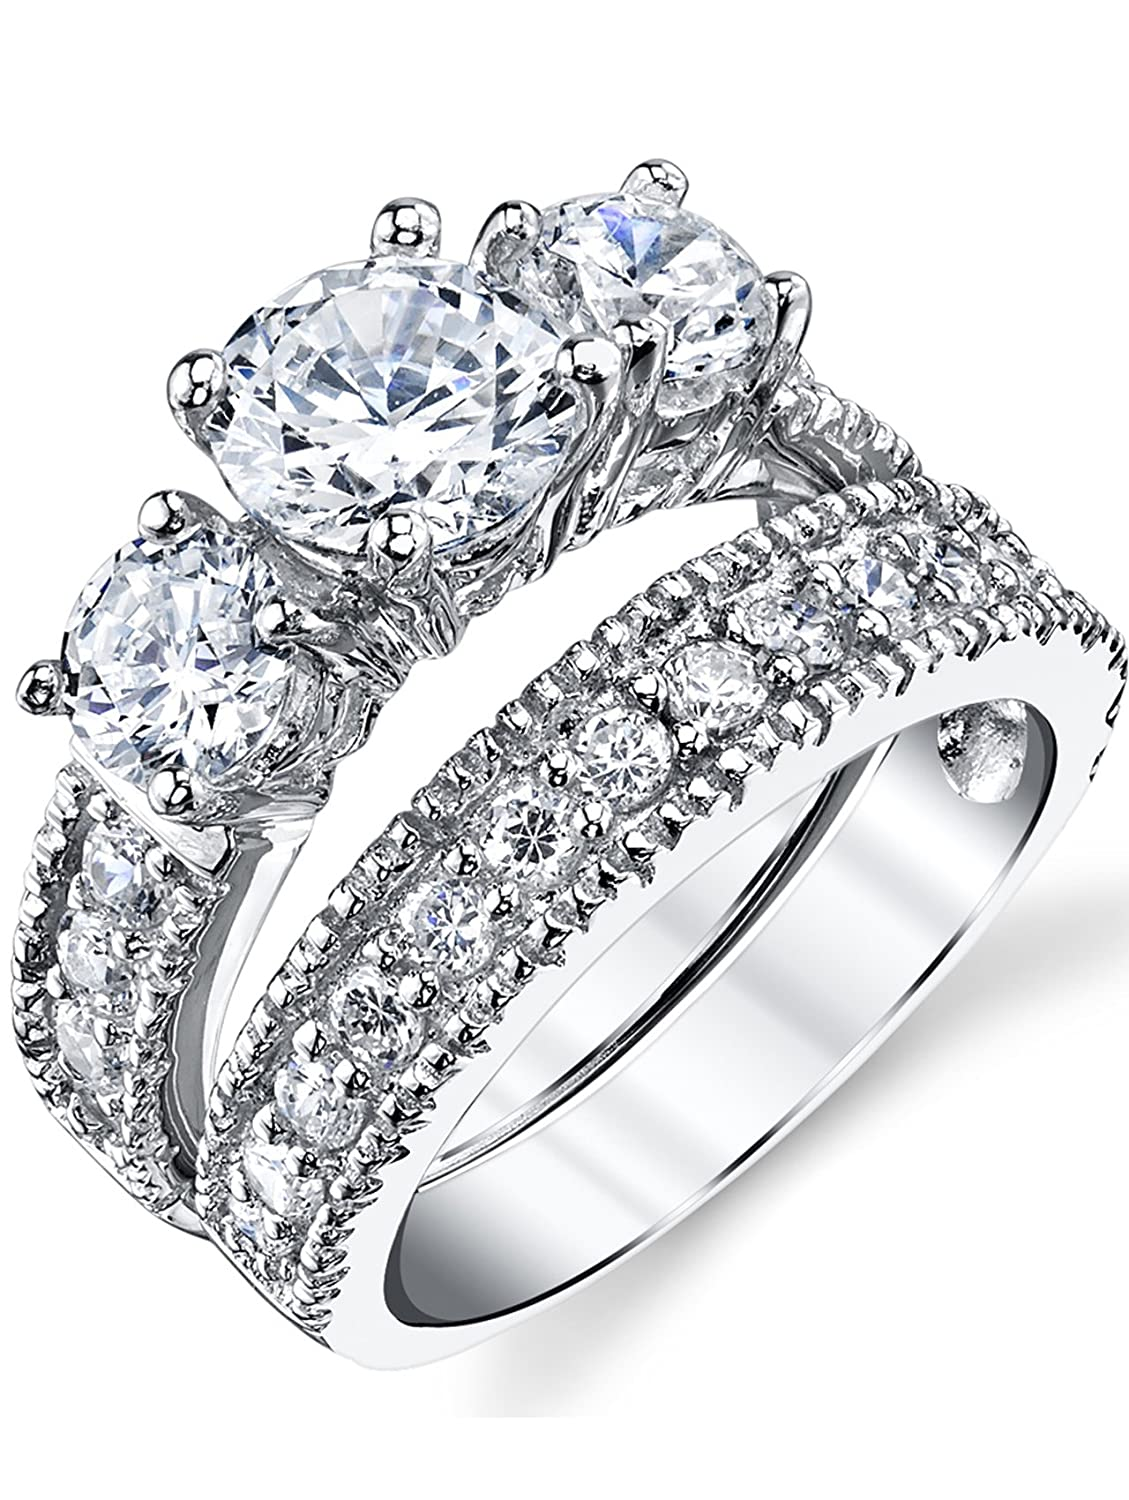 Sterling Silver Past Present Future 2-Pc Bridal Set Engagement Wedding Ring Band W/Cubic Zirconia CZ SILRXXX216